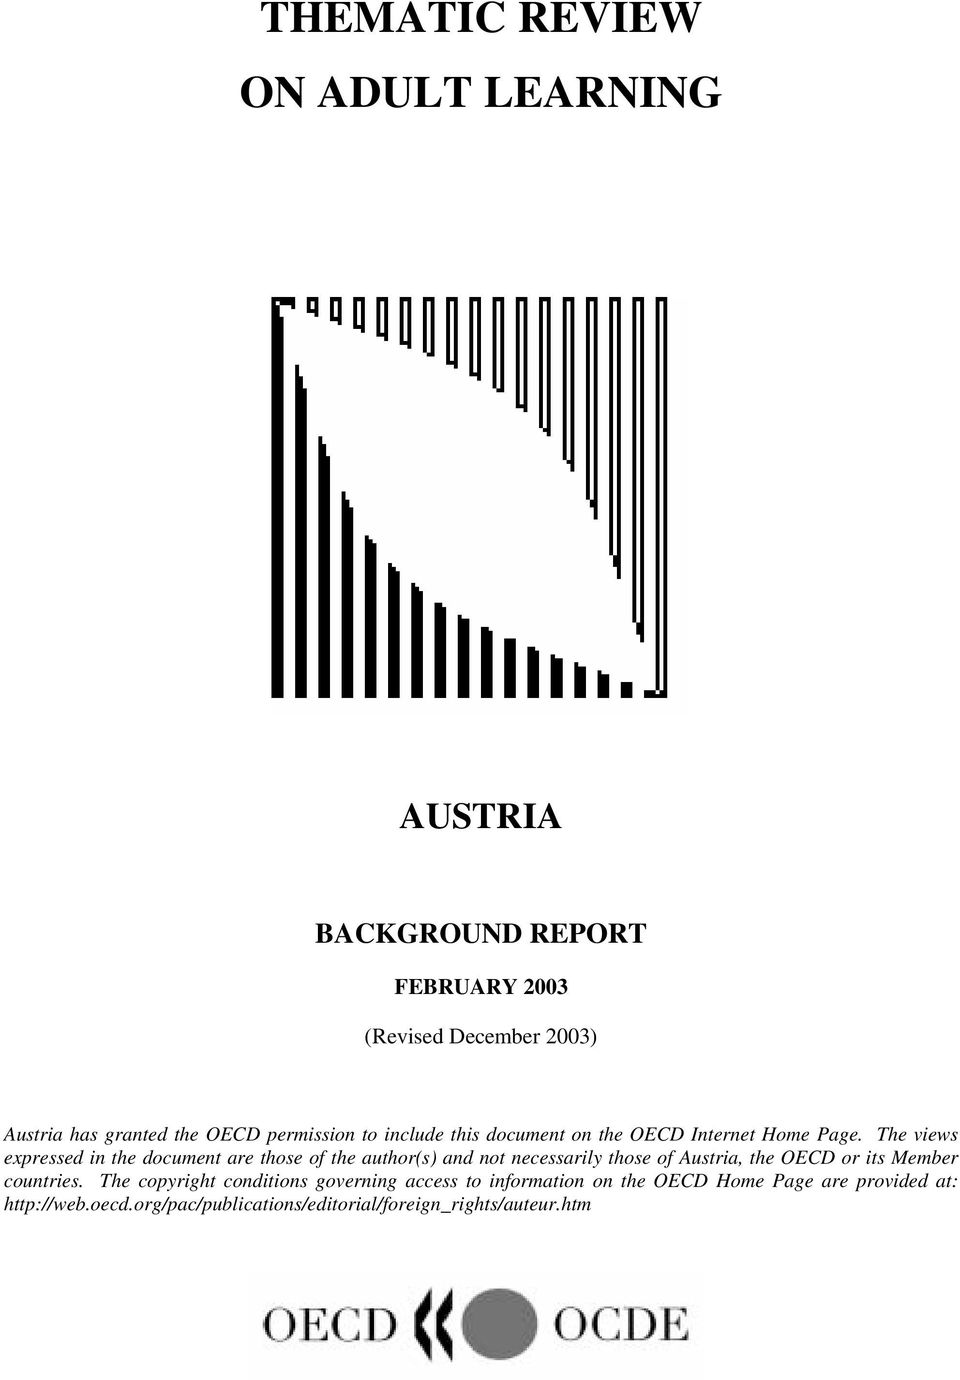 The views expressed in the document are those of the author(s) and not necessarily those of Austria, the OECD or its Member